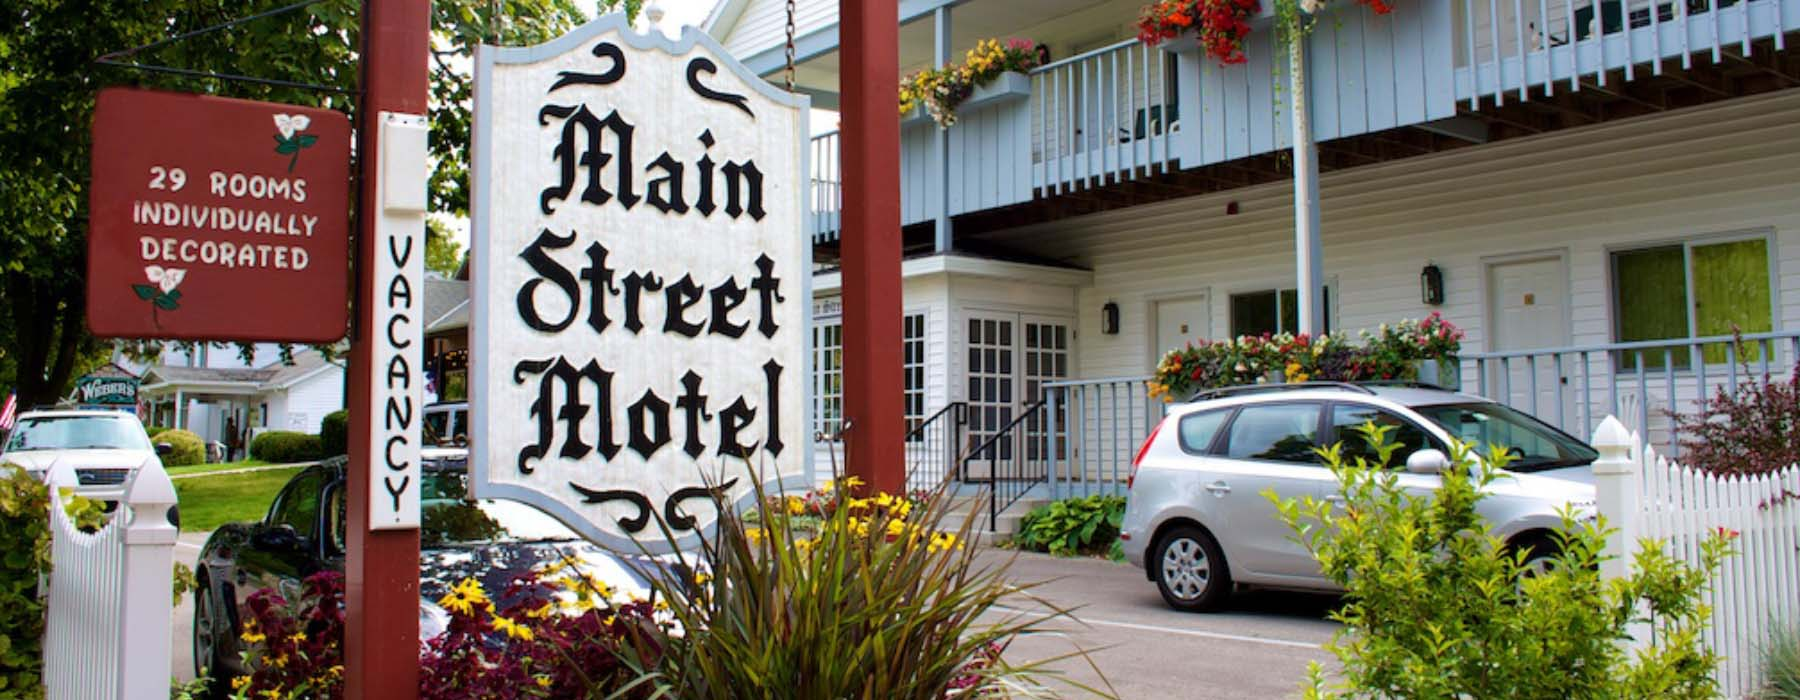 Main Street Motel Sign and Exterior